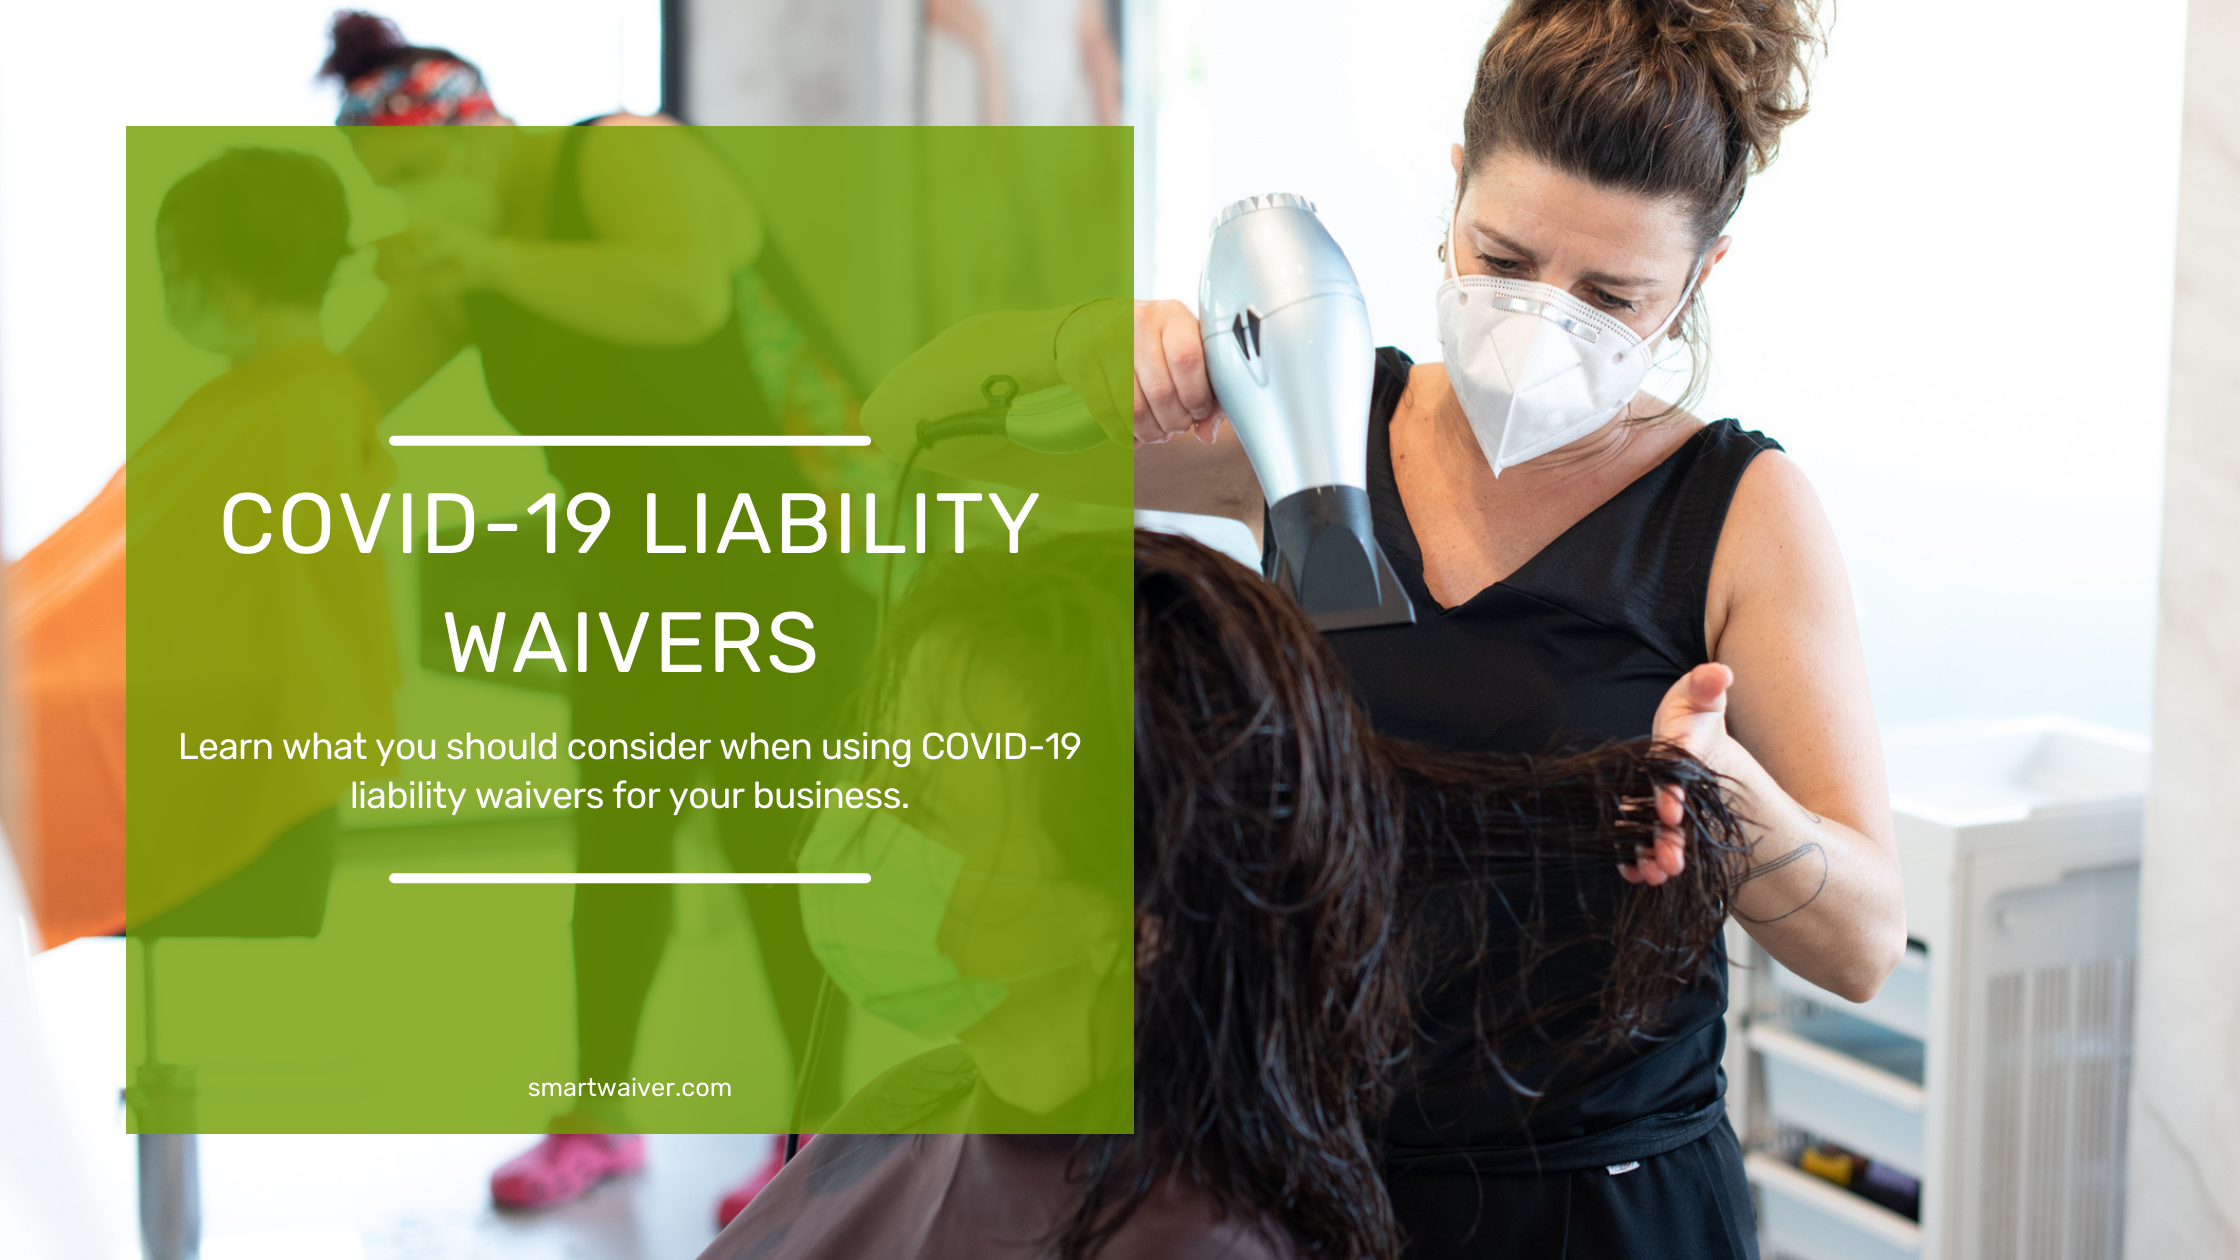 COVID-19 Liability Waivers - What You Should Know